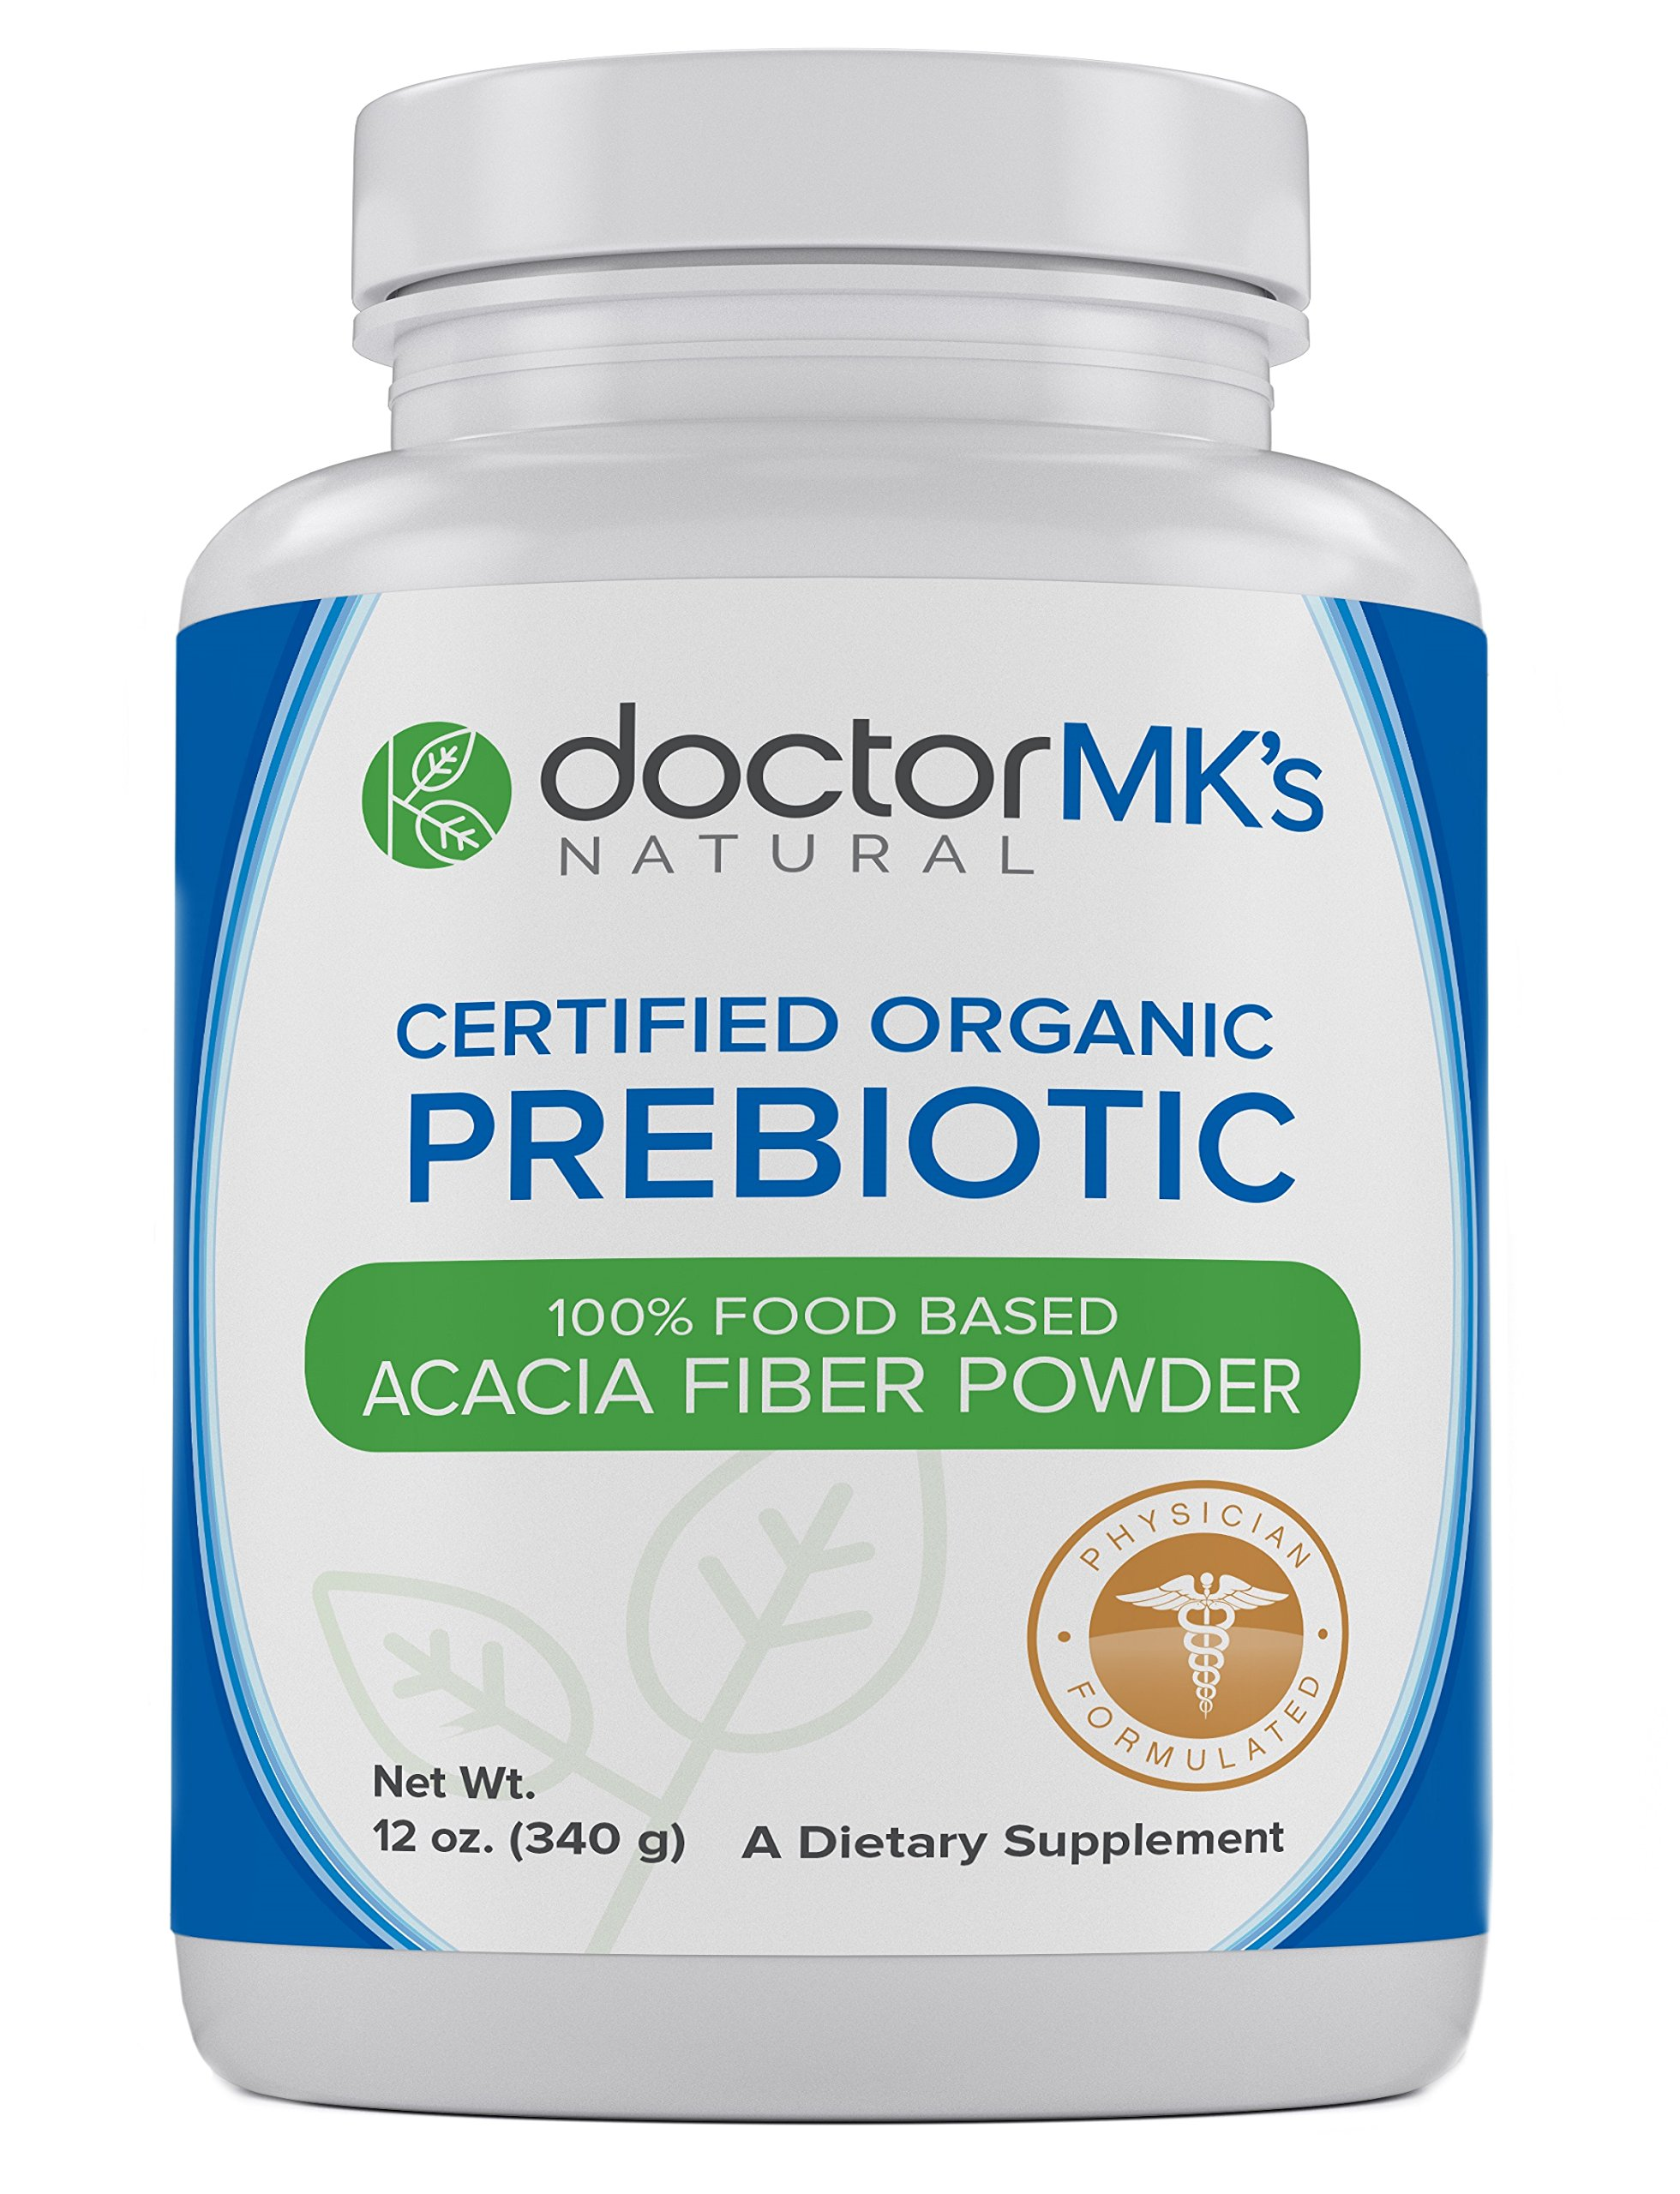 Organic Prebiotic Powder by Doctor MK's® - Unflavored, Prebiotics Acacia Fiber Supplement Promotes Good Bacteria, Digestion, IBS, Weight Loss, 12 oz (340g) by doctor MK's NATURAL